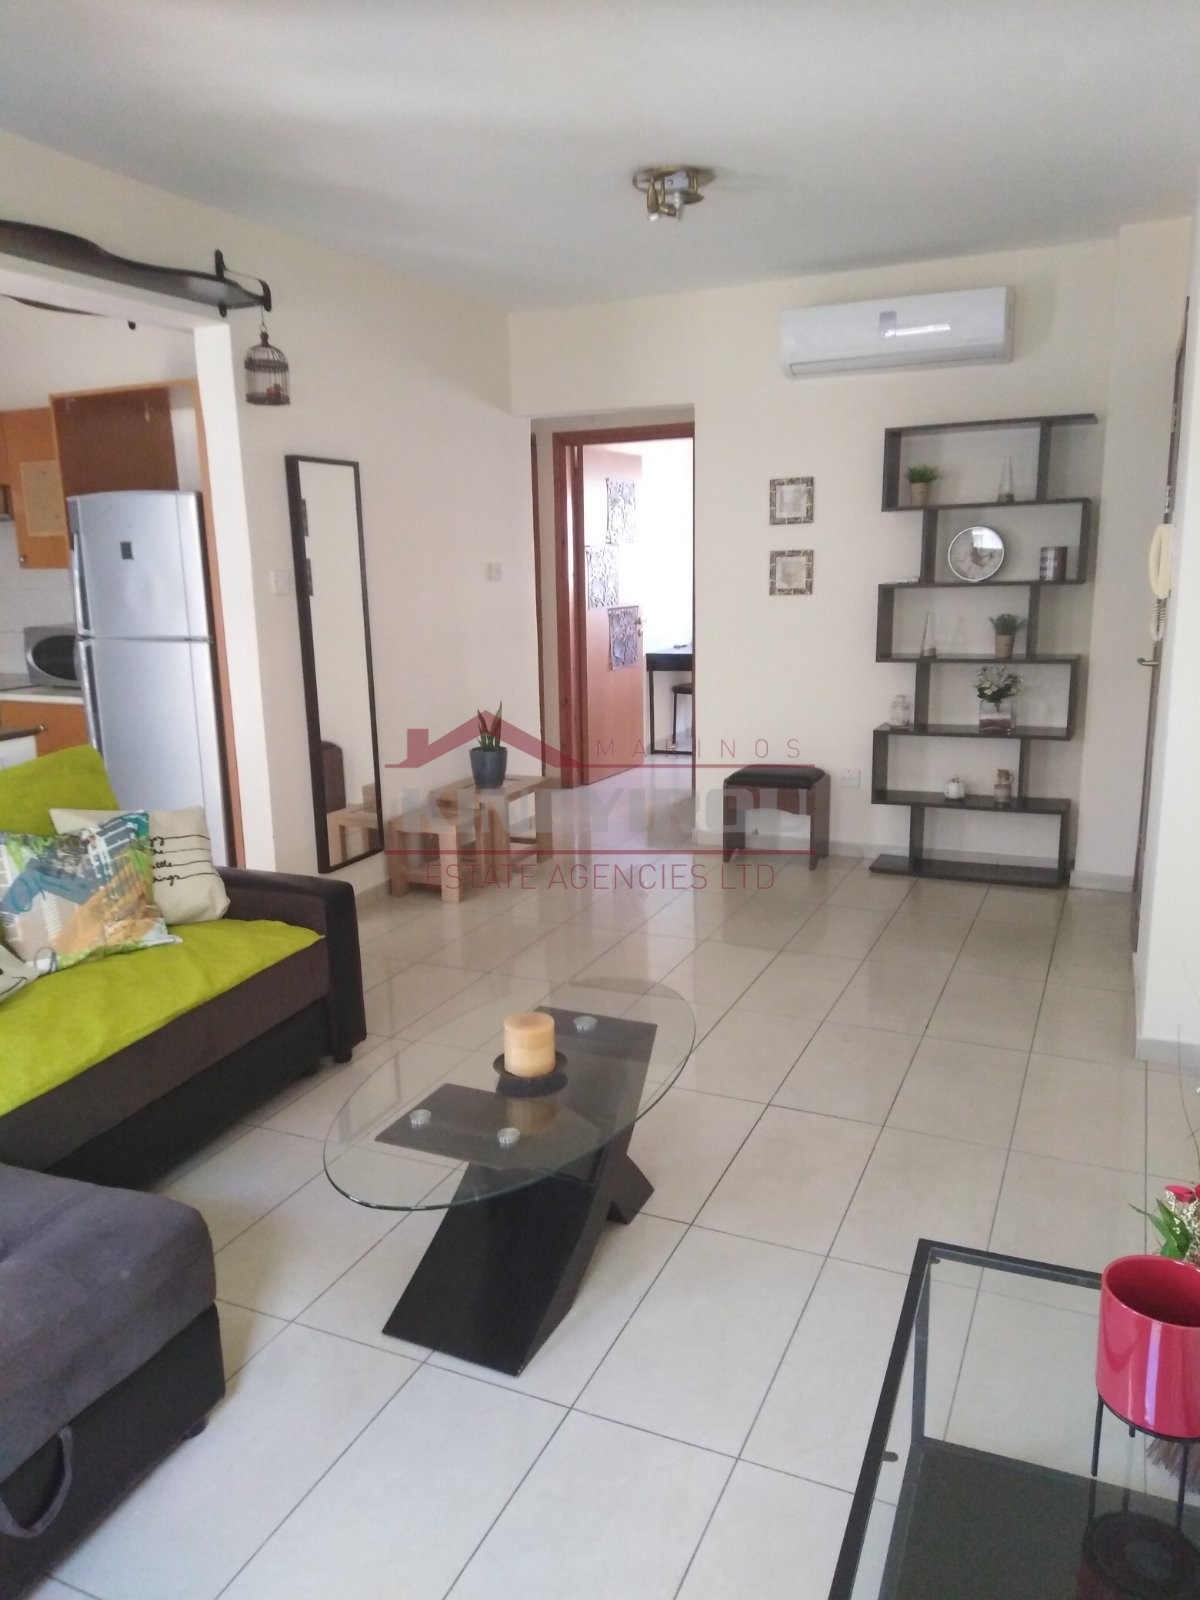 Larnaca property – two bedroom apartment for rent in Drosia